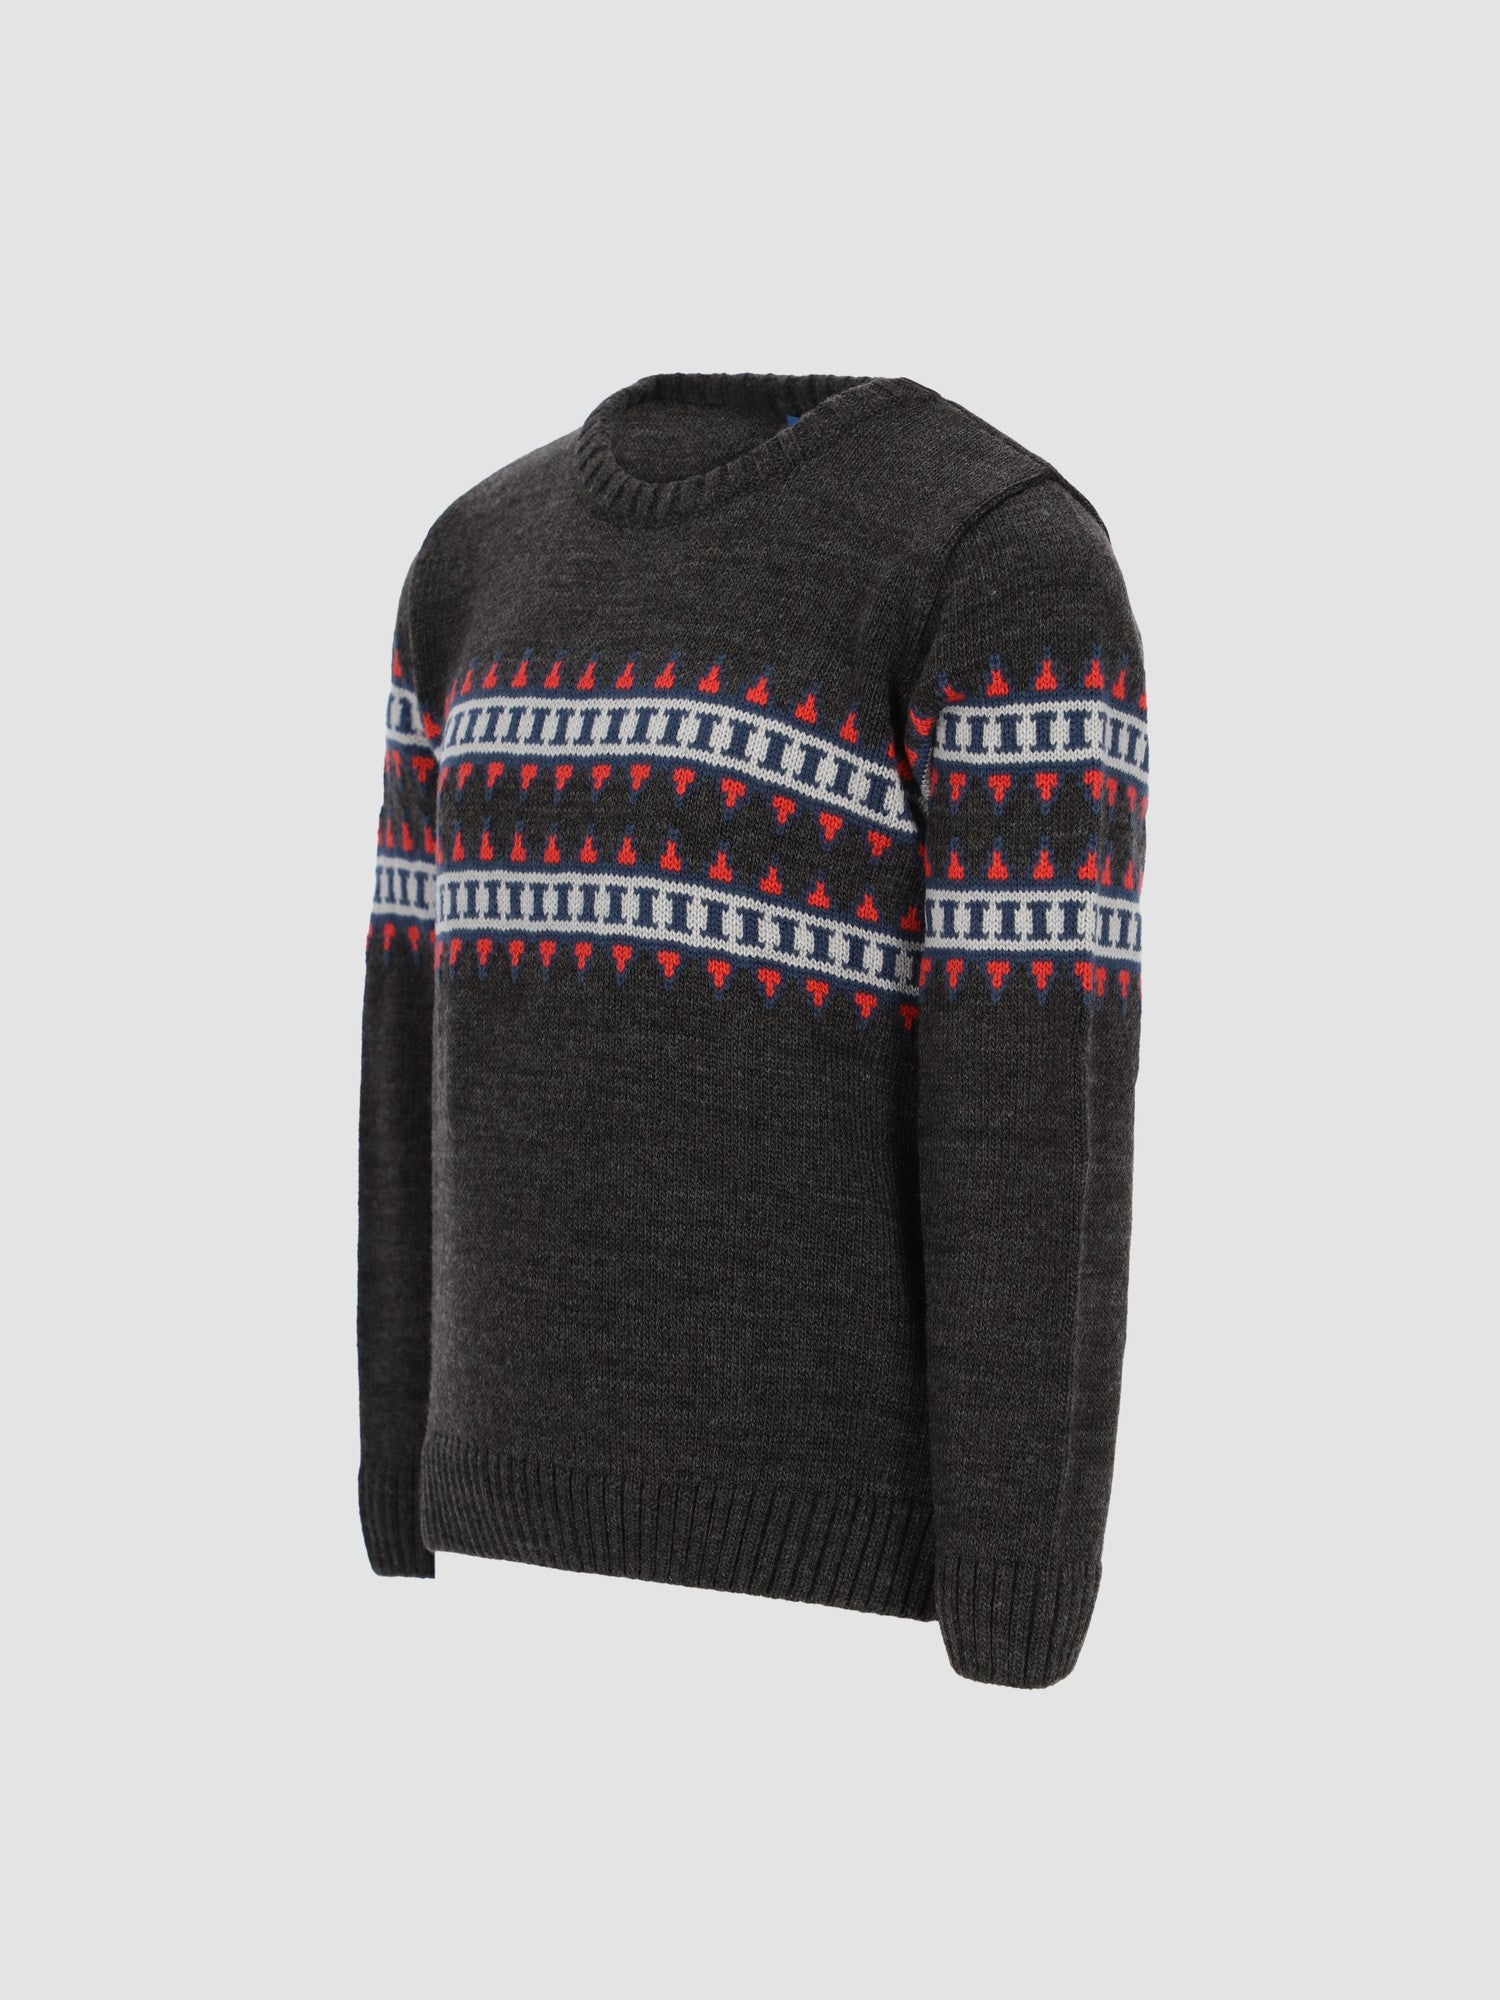 Kids Boys Knit Patterned Pullover